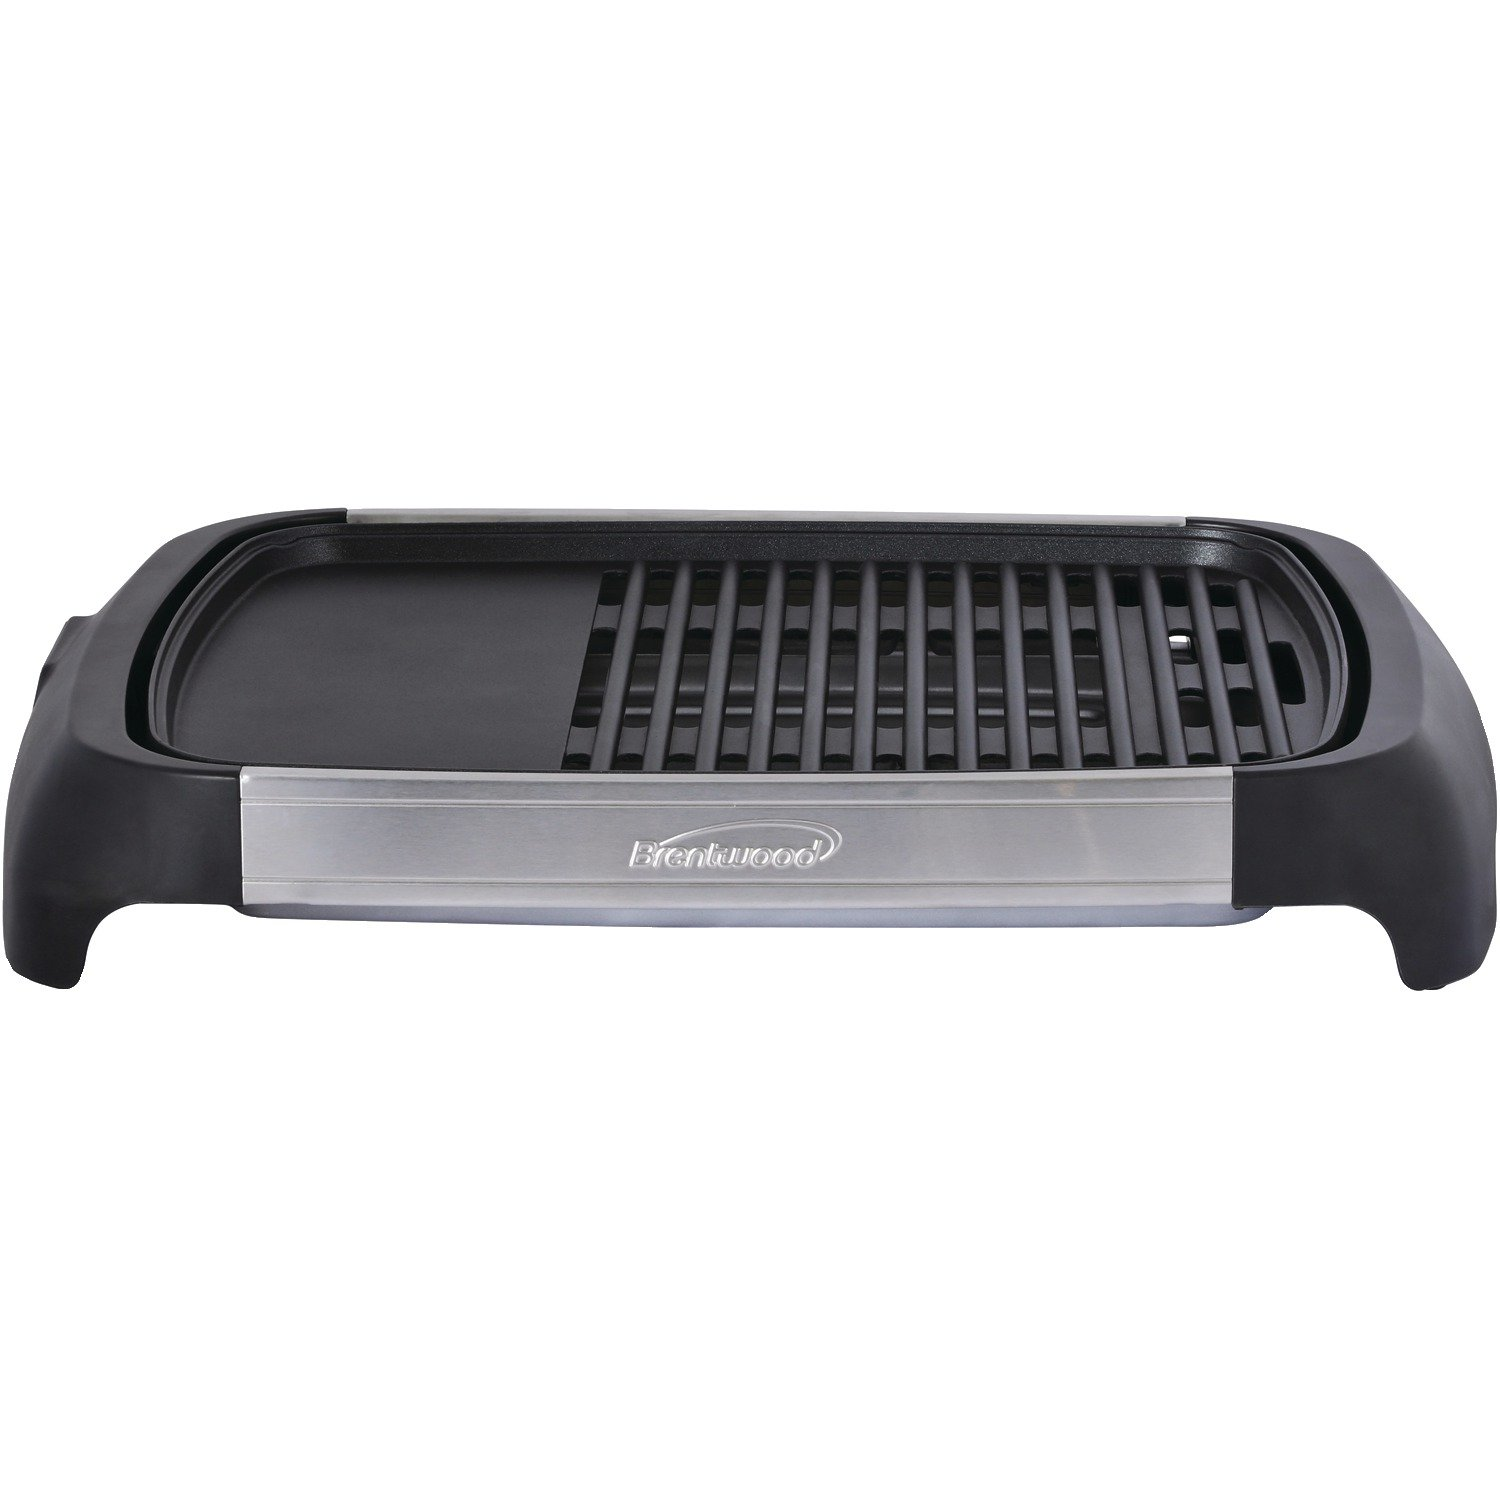 Brentwood Select TS-641 1200 Watt Electric Indoor Grill & Griddle, Stainless Steel BRENTWOOD APPLIANCES